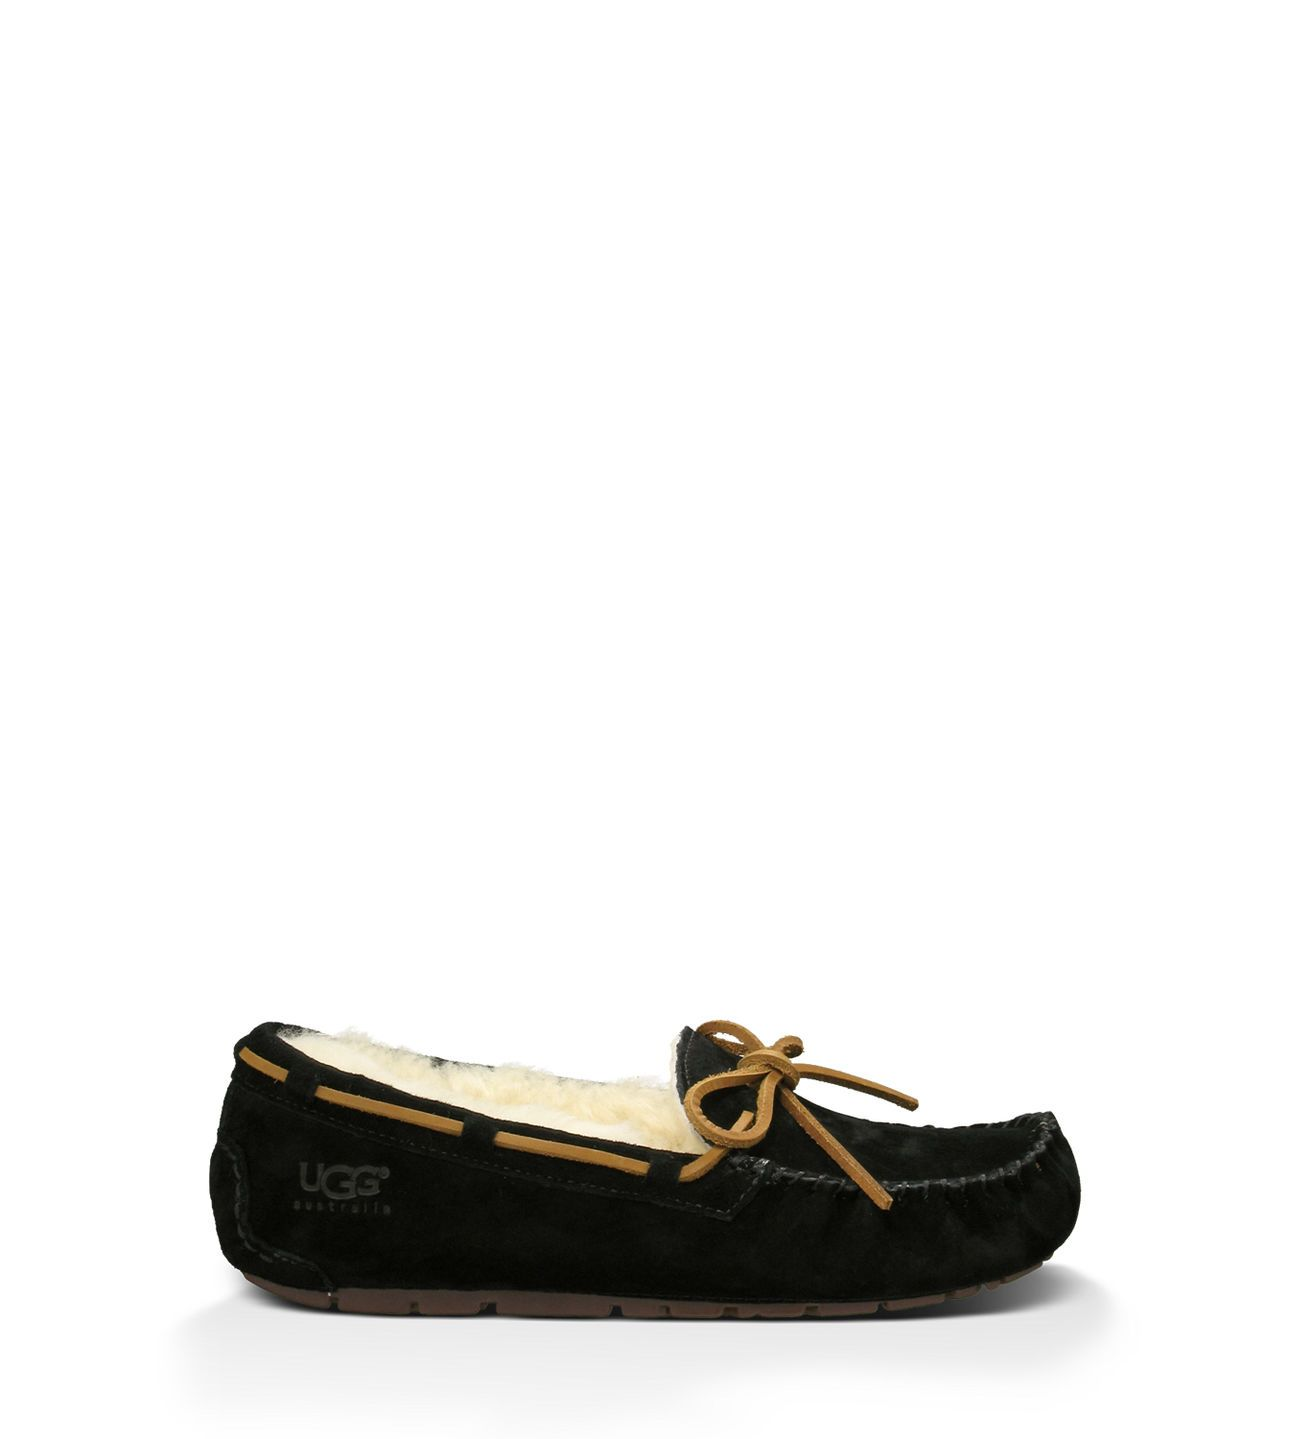 919f9b8d1a9 Women's Share this product Dakota Slipper | Pin Now, Buy Later ...